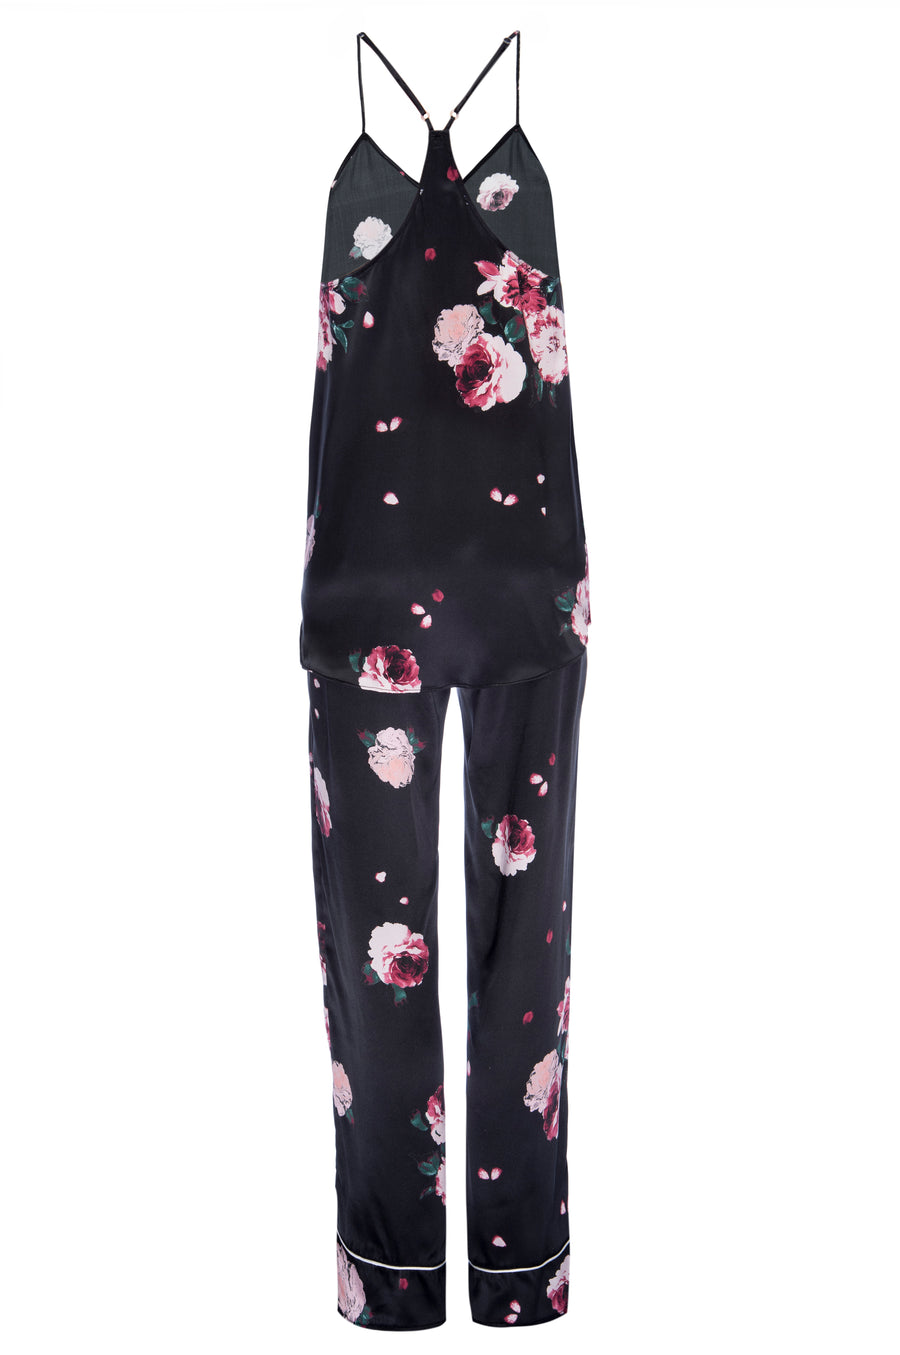 Silk Charmeuse Tank + Pant Set: Black Rose Print